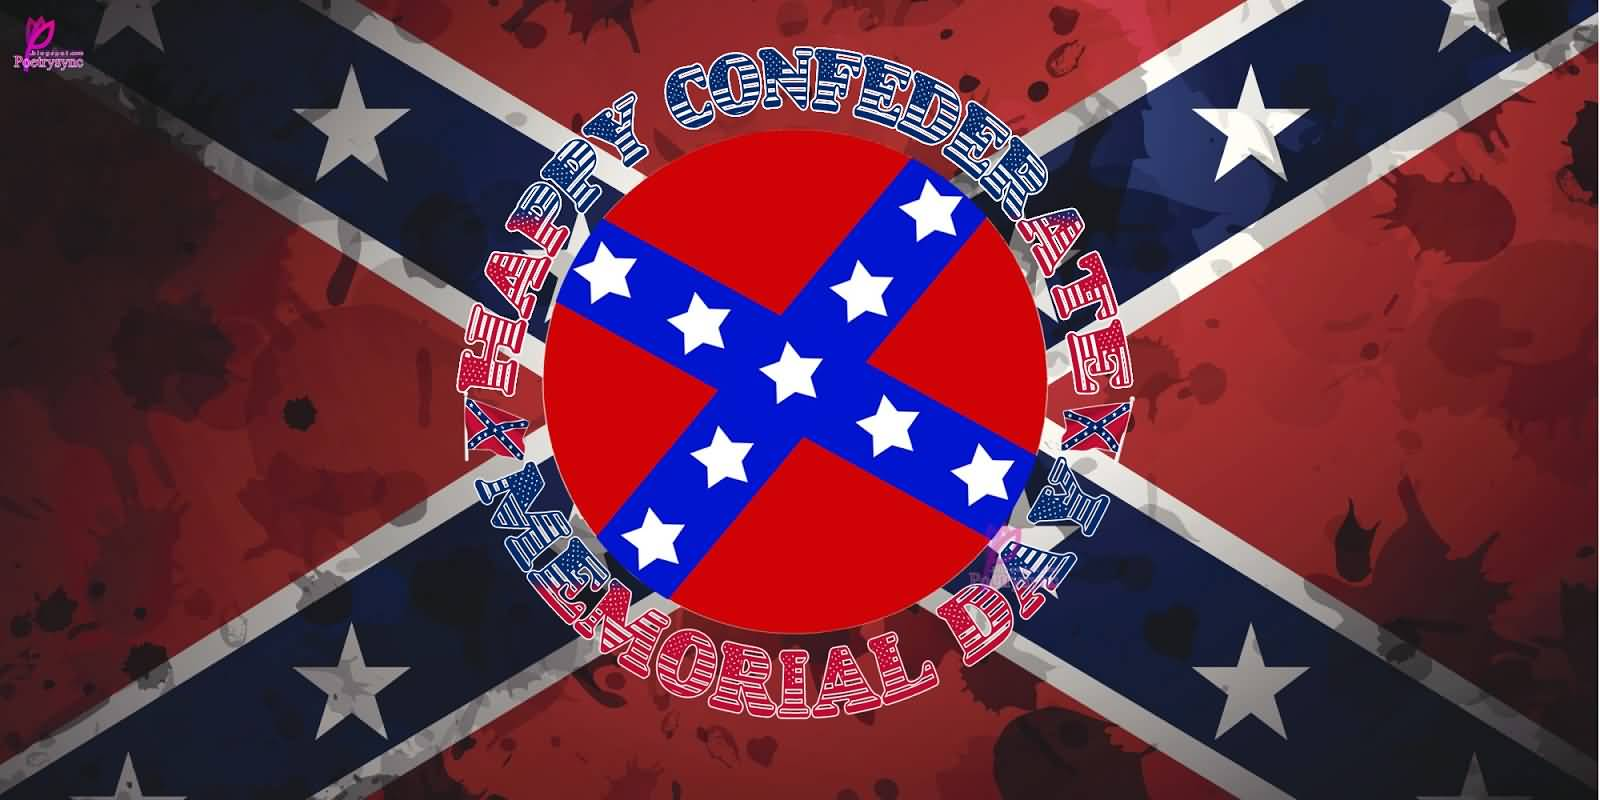 17-Happy Confederate Memorial Day